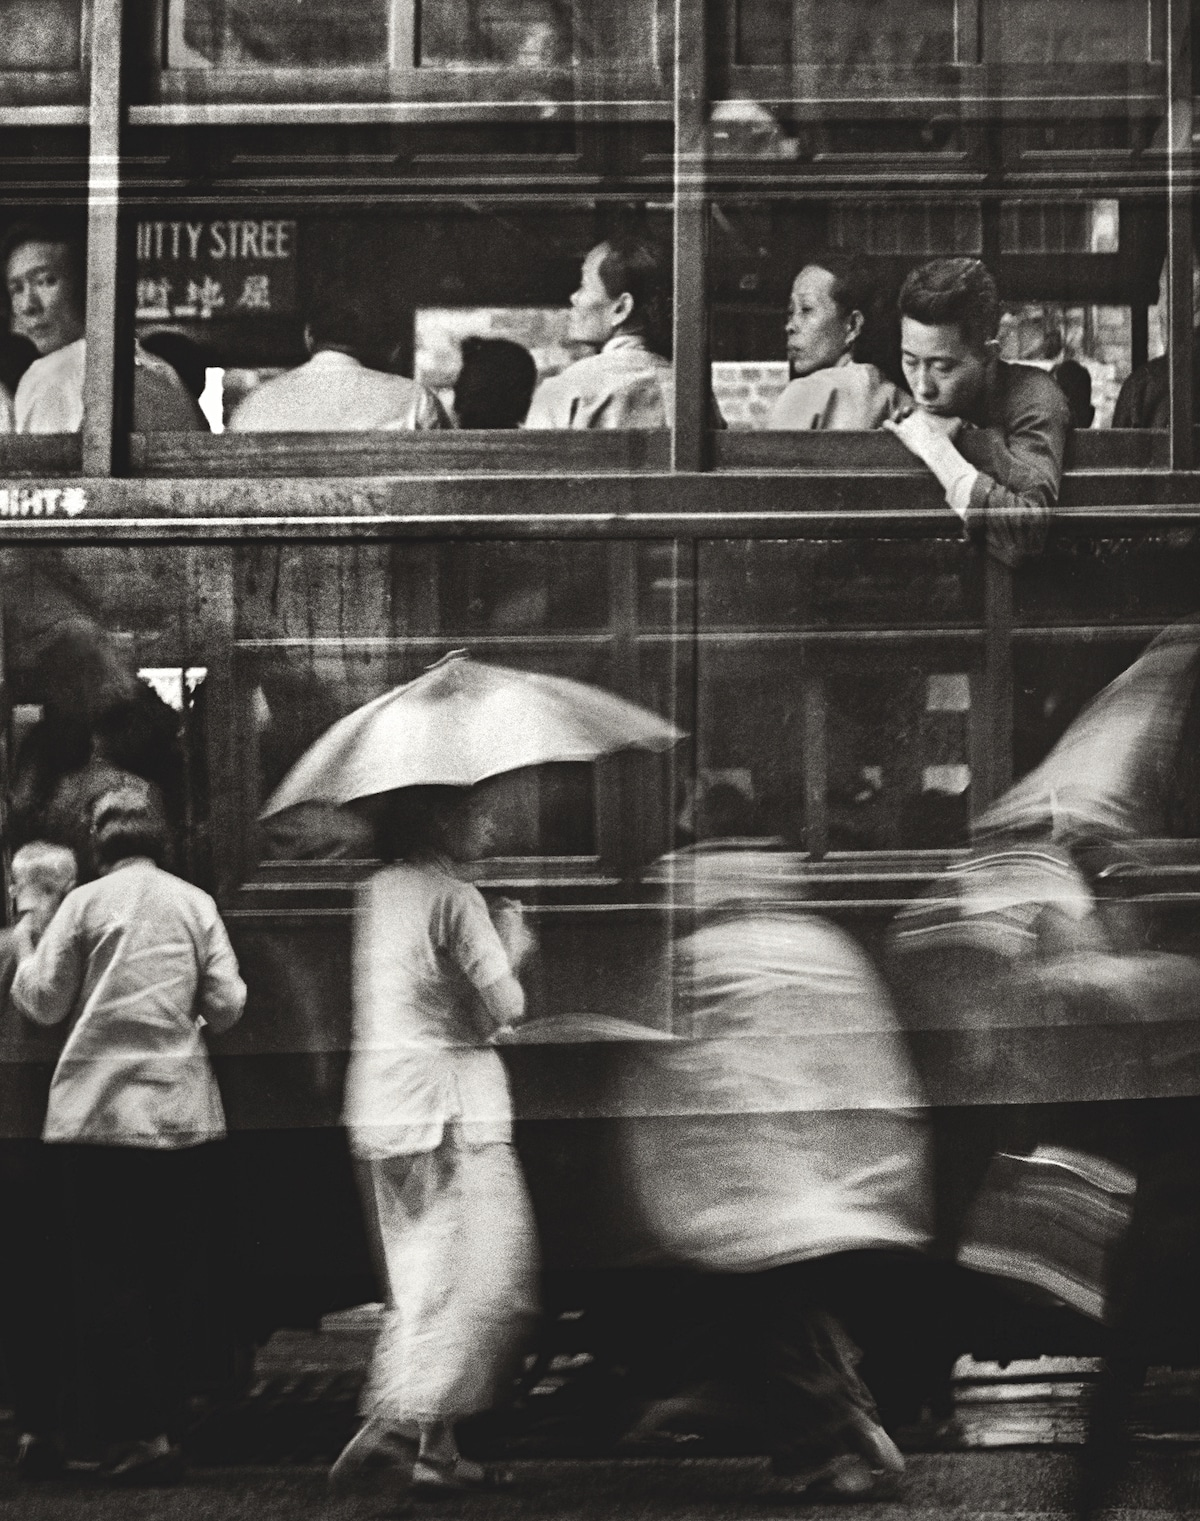 Fan-Ho-Whitty-Street-Diary屈地街日記-Hong-Kong-1950s-and-60s-courtesy-of-Blue-Lotus-Gallery